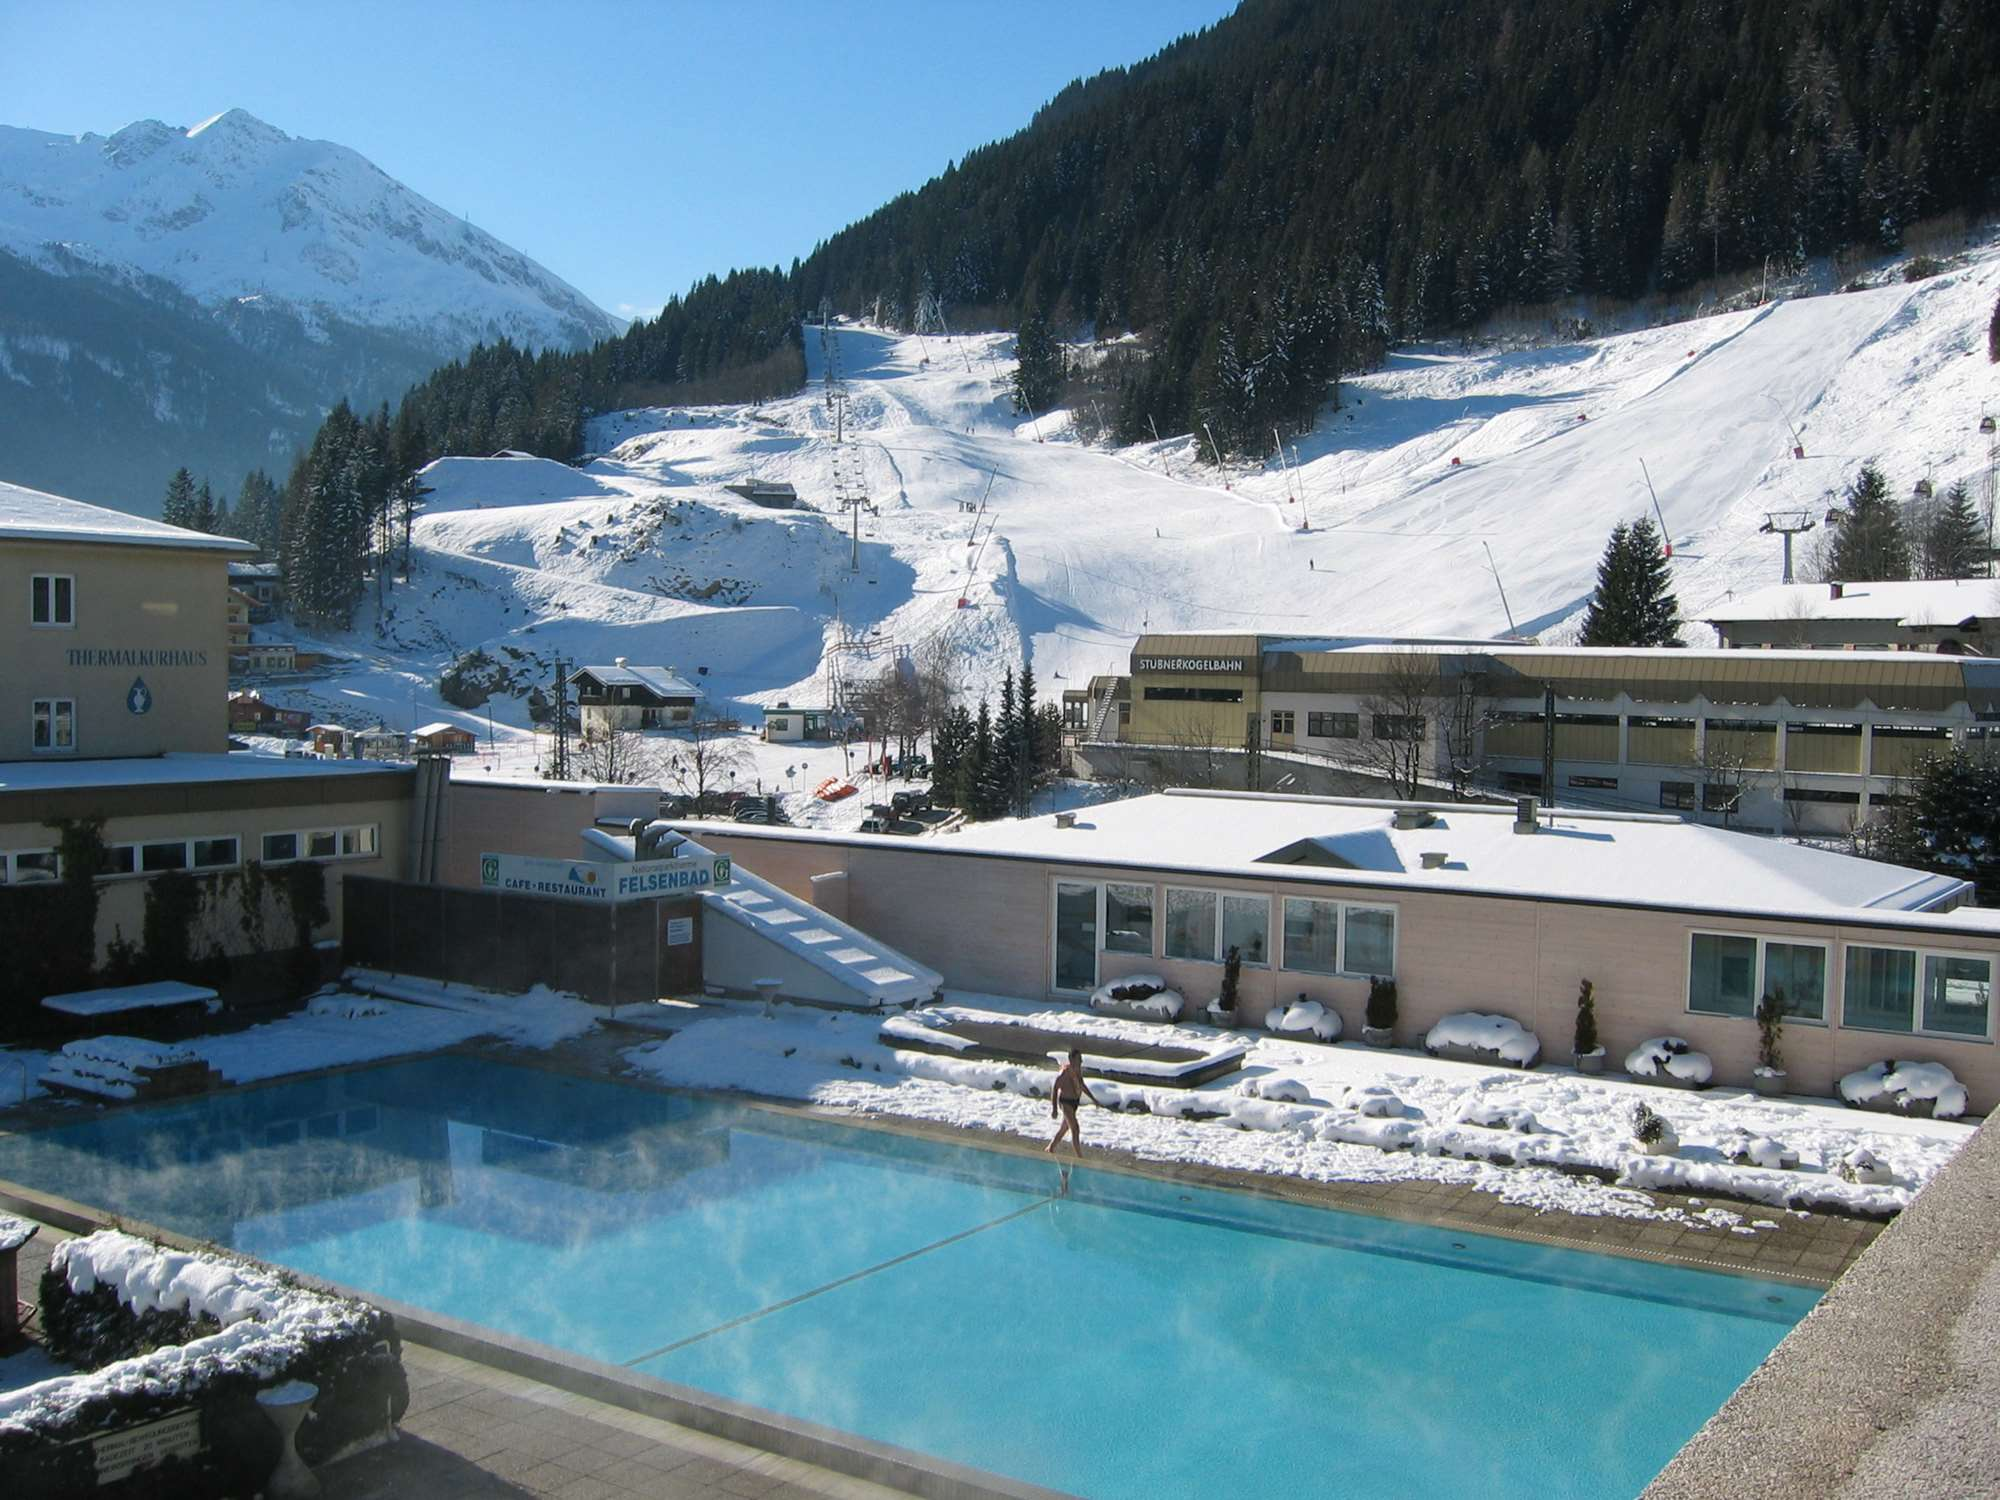 The thermal spa baths in Bad Gastein